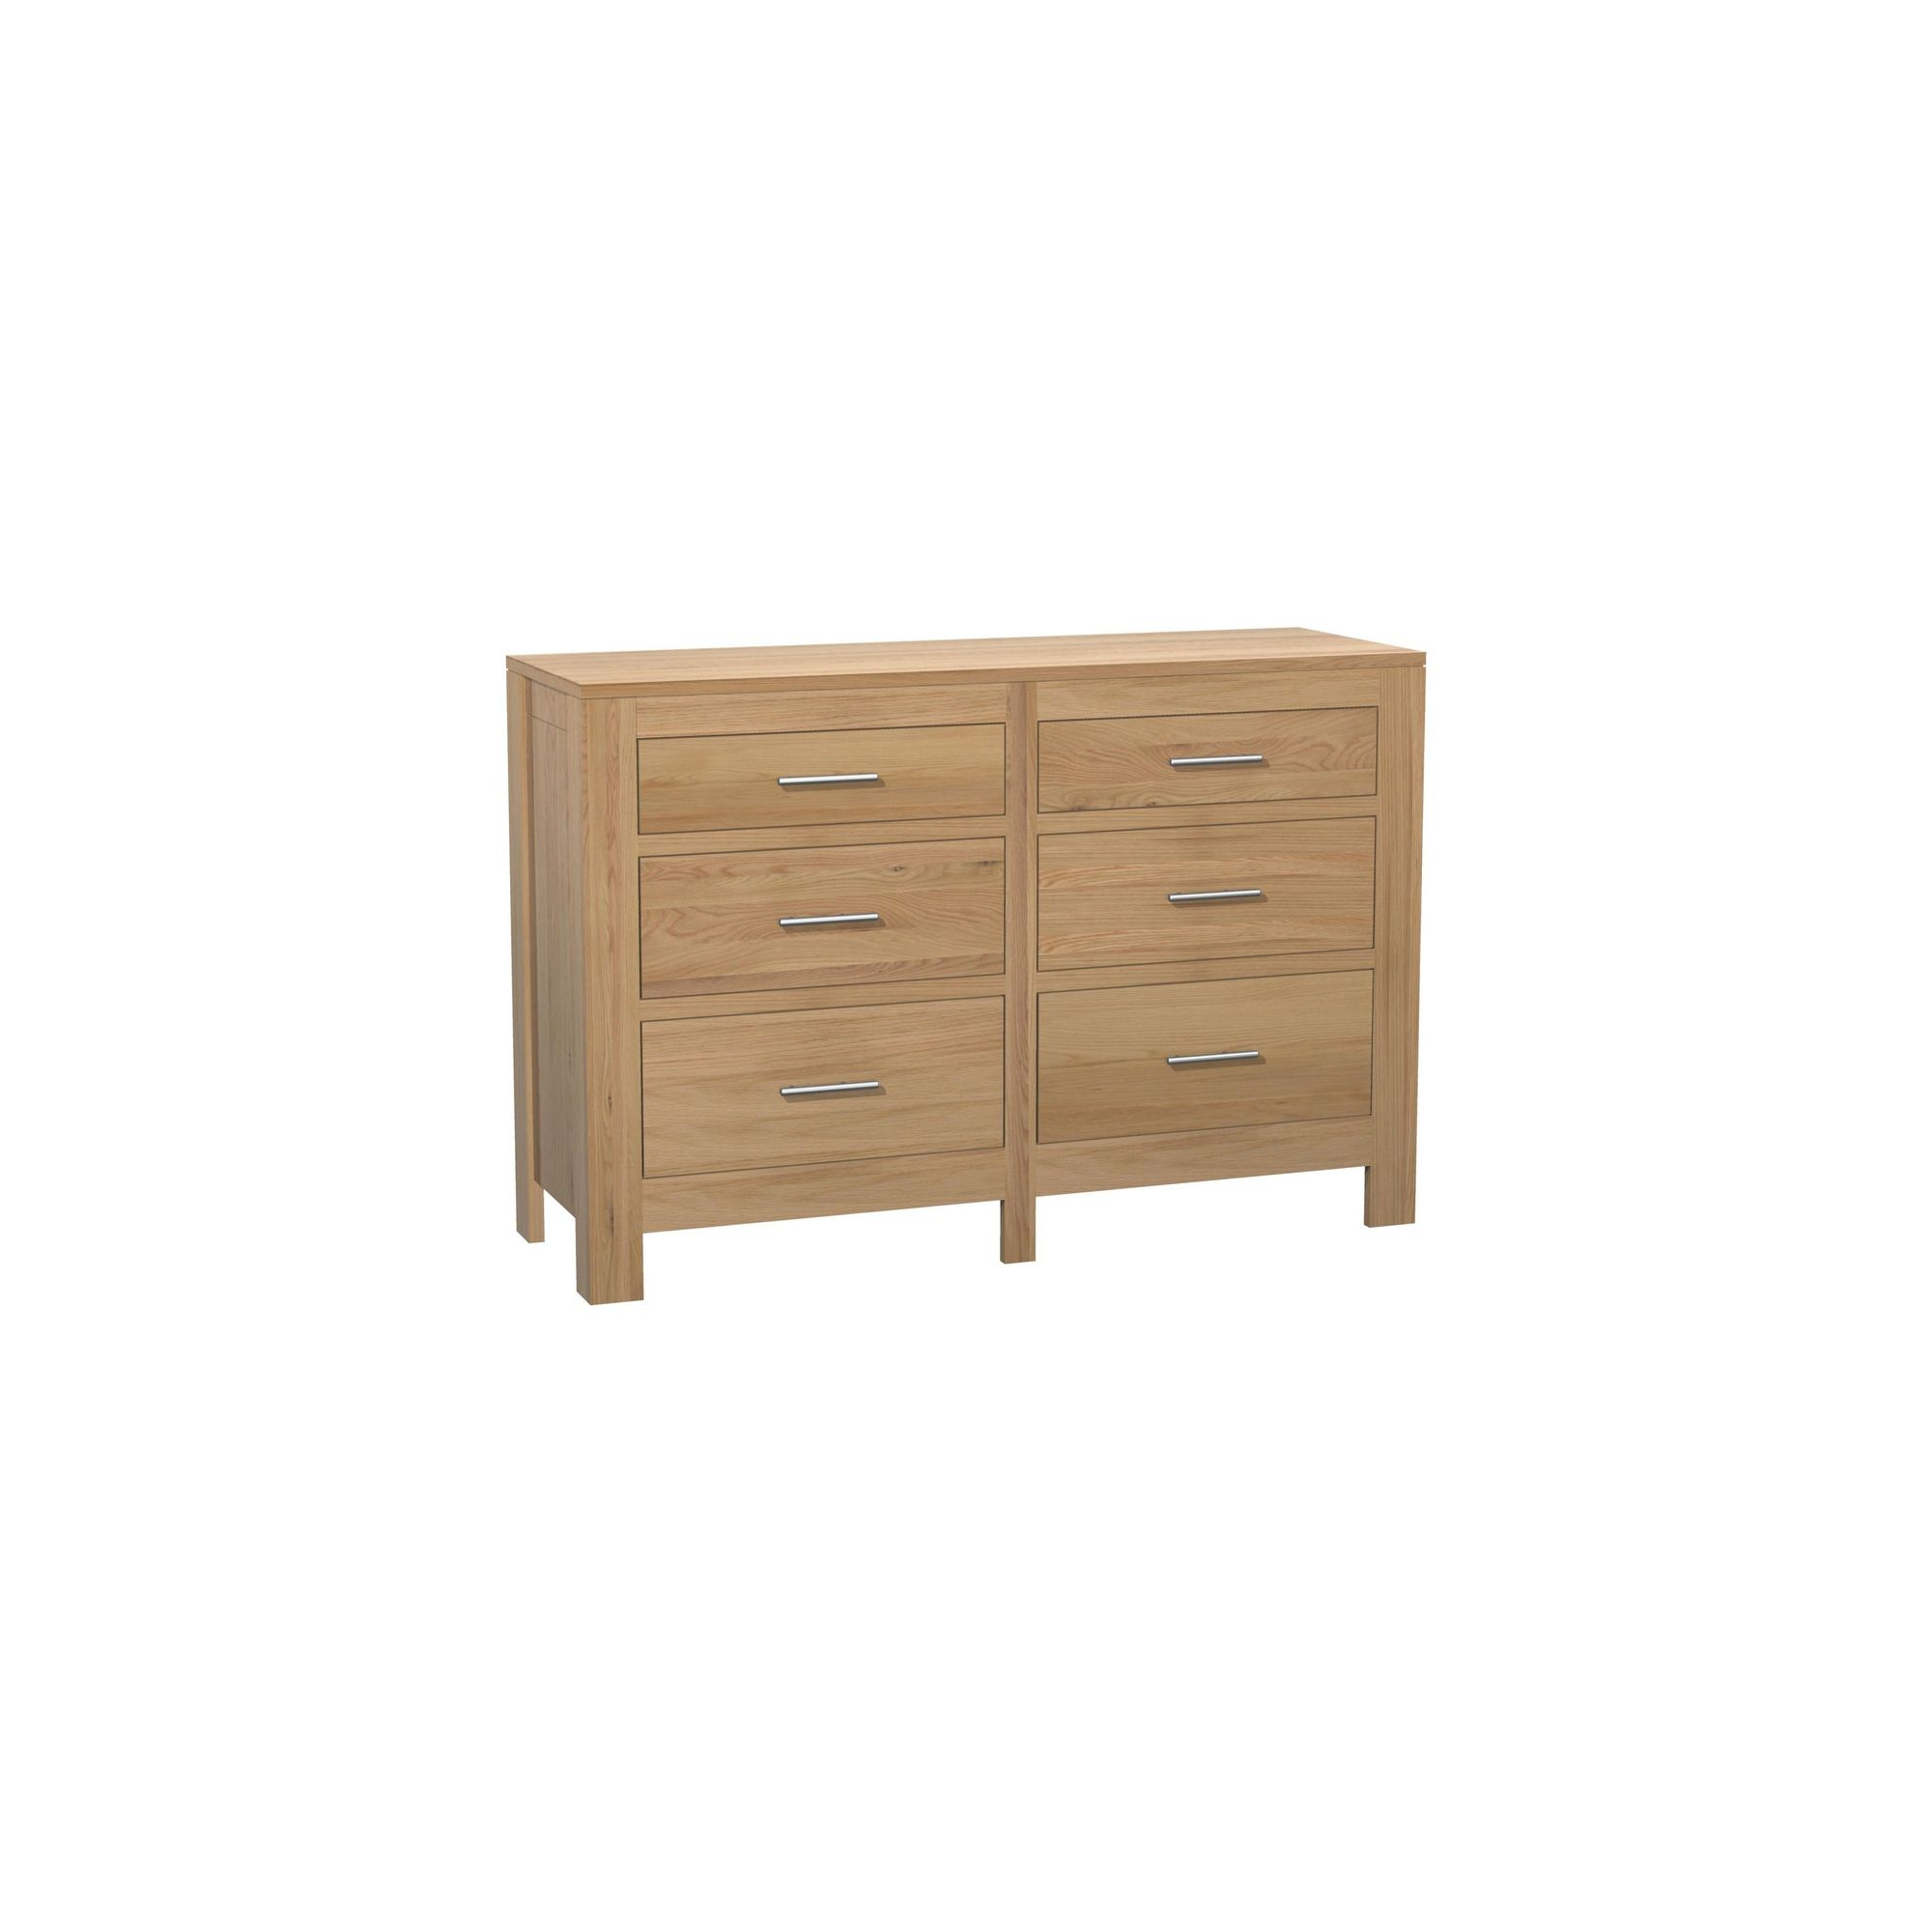 Kelburn Furniture Milano 6 Drawer Chest in Clear Satin Lacquer at Tesco Direct